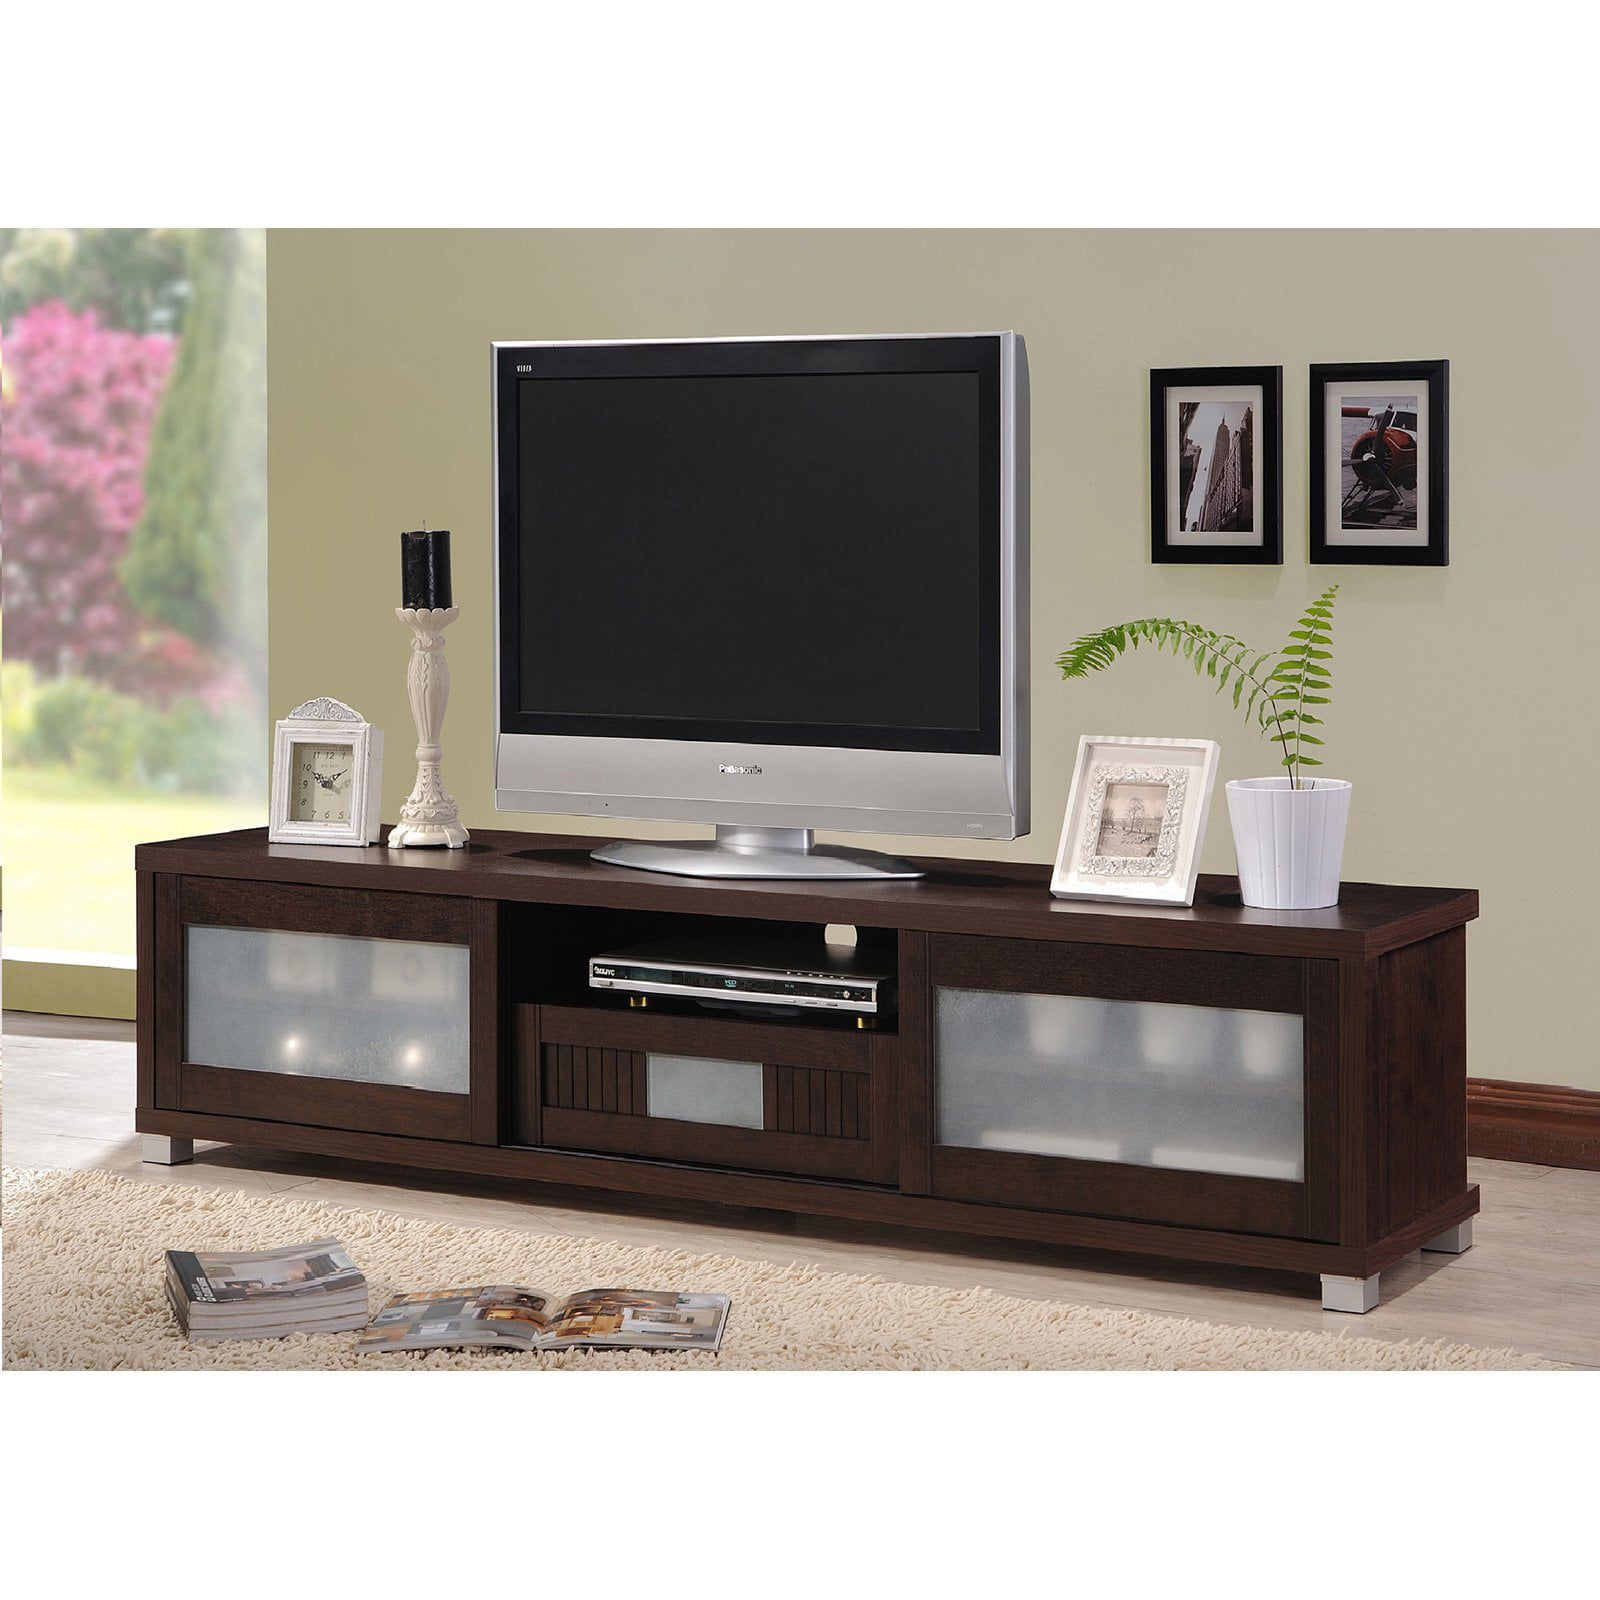 Baxton Studio Gerhardine Dark Brown Wood 70 Inch Tv Cabinet With 2 Sliding Doors And Drawer